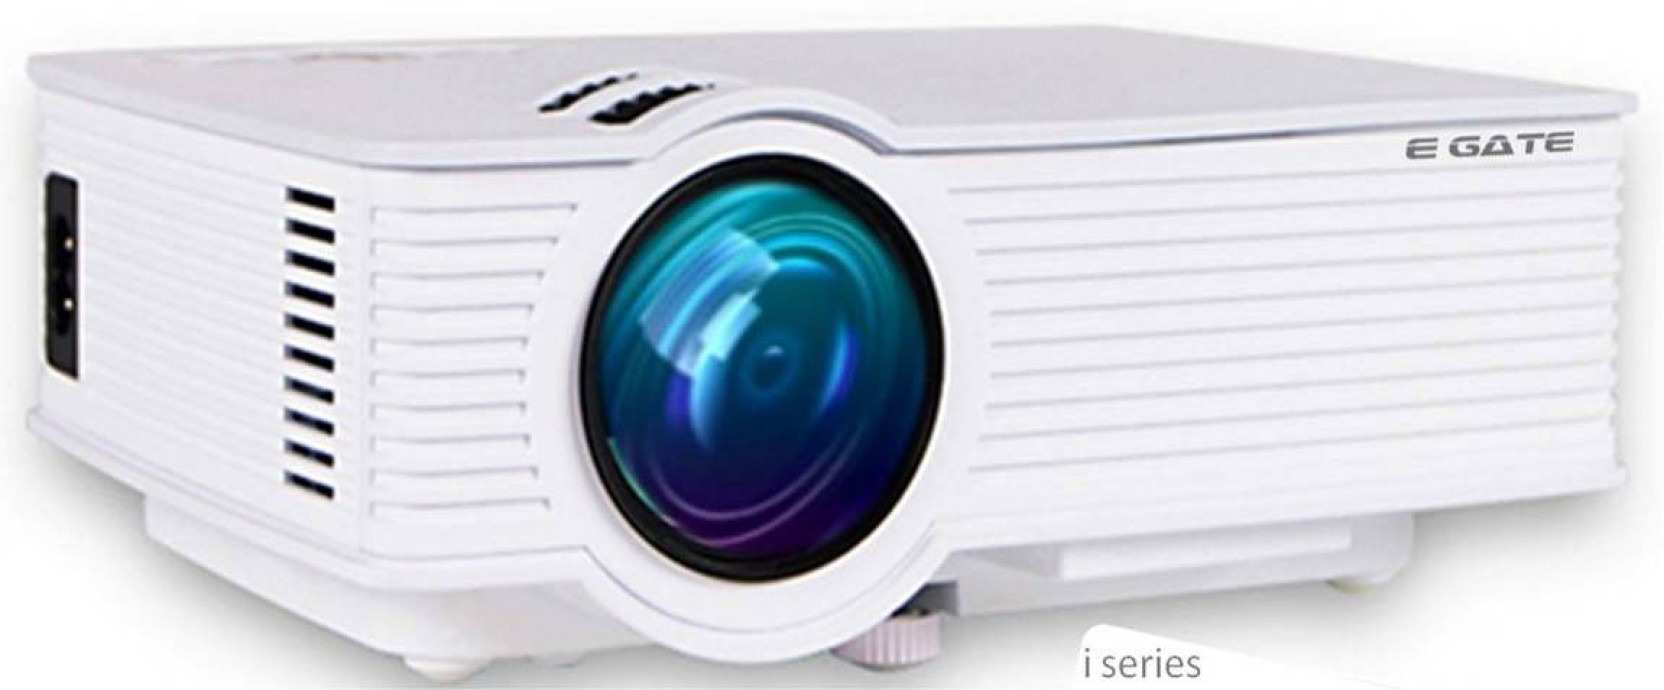 Egate i12 portable projector price in india buy egate for Handheld projector price